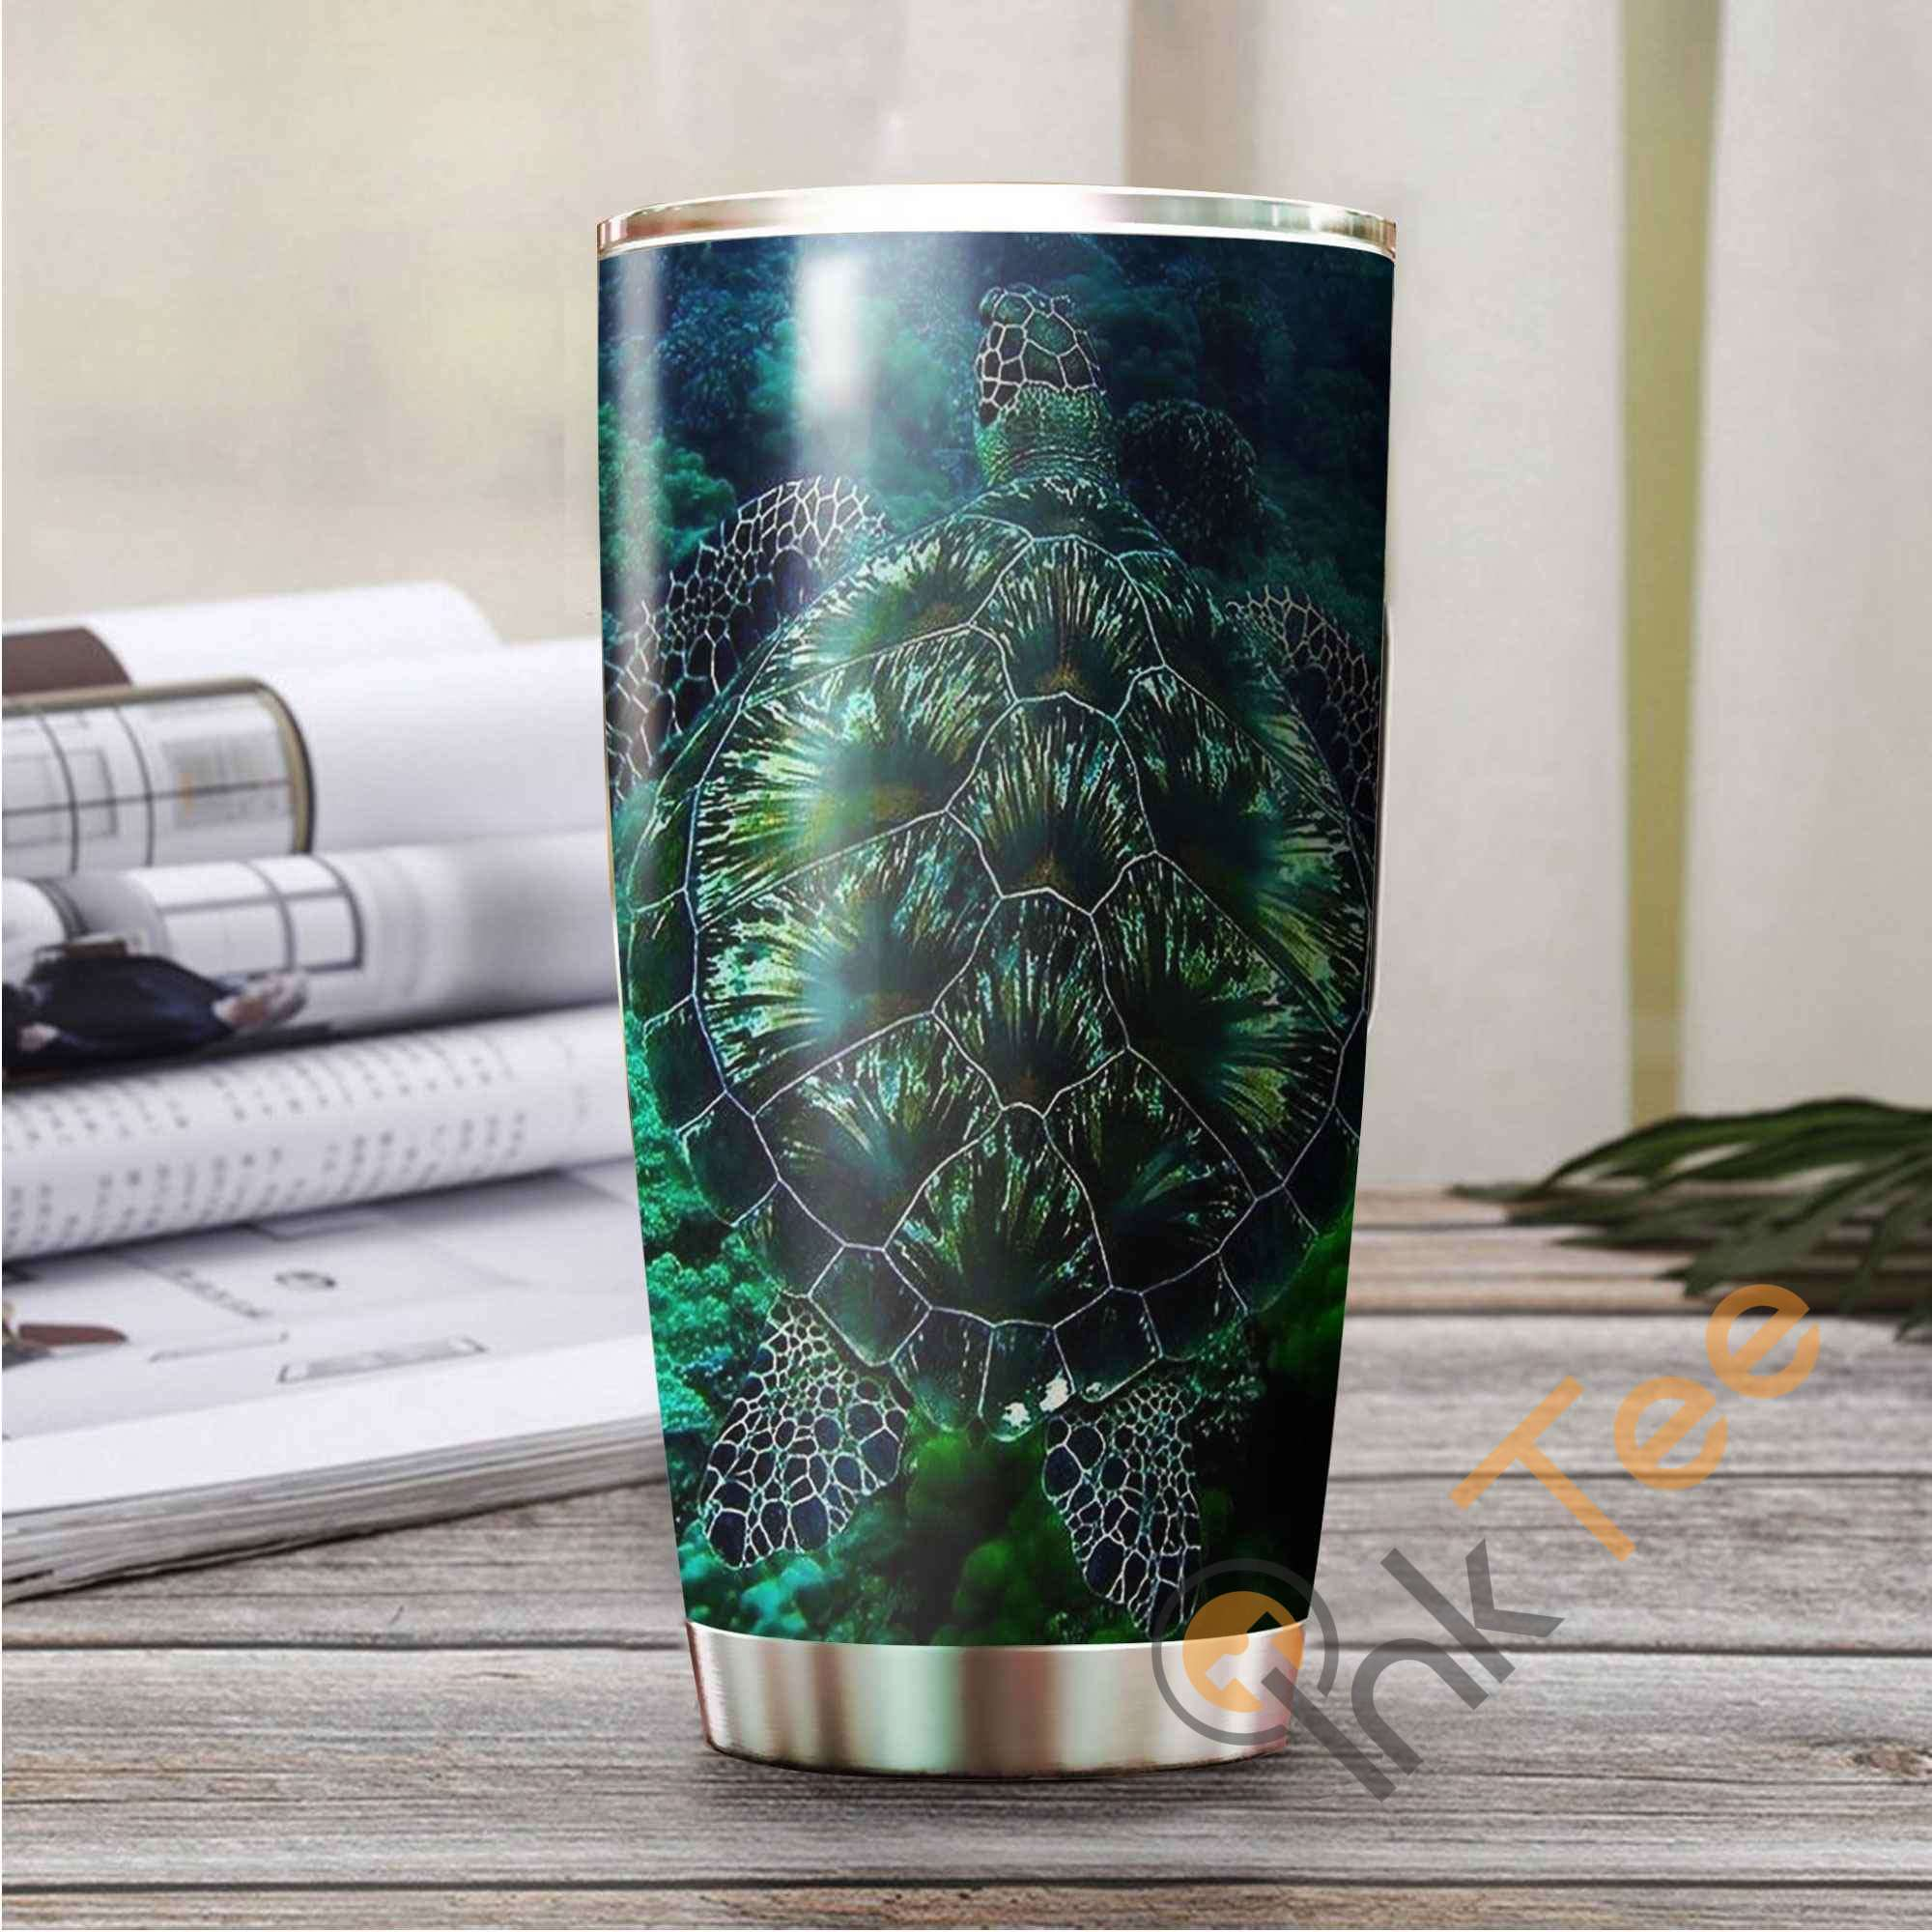 Green Sea Turtle Amazon Best Seller Sku 2642 Stainless Steel Tumbler